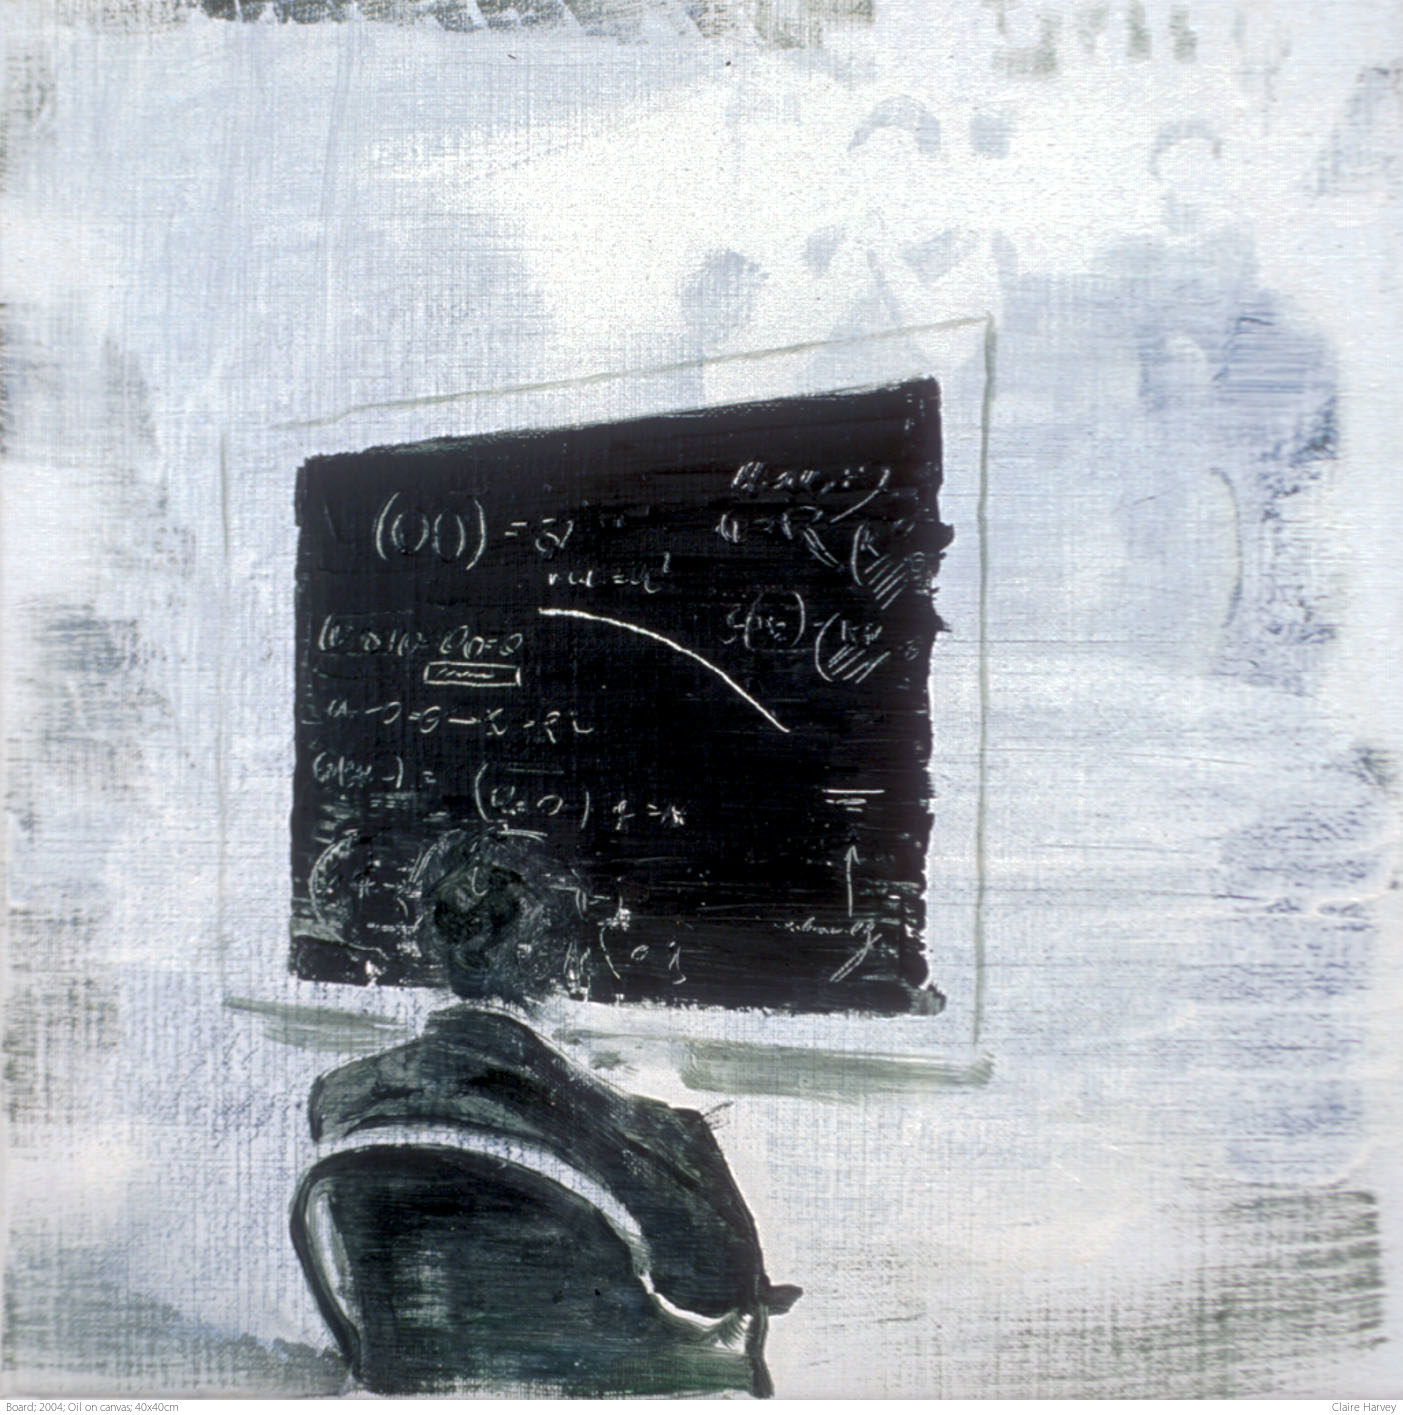 Board; 2004; Oil on canvas; 40x40cm